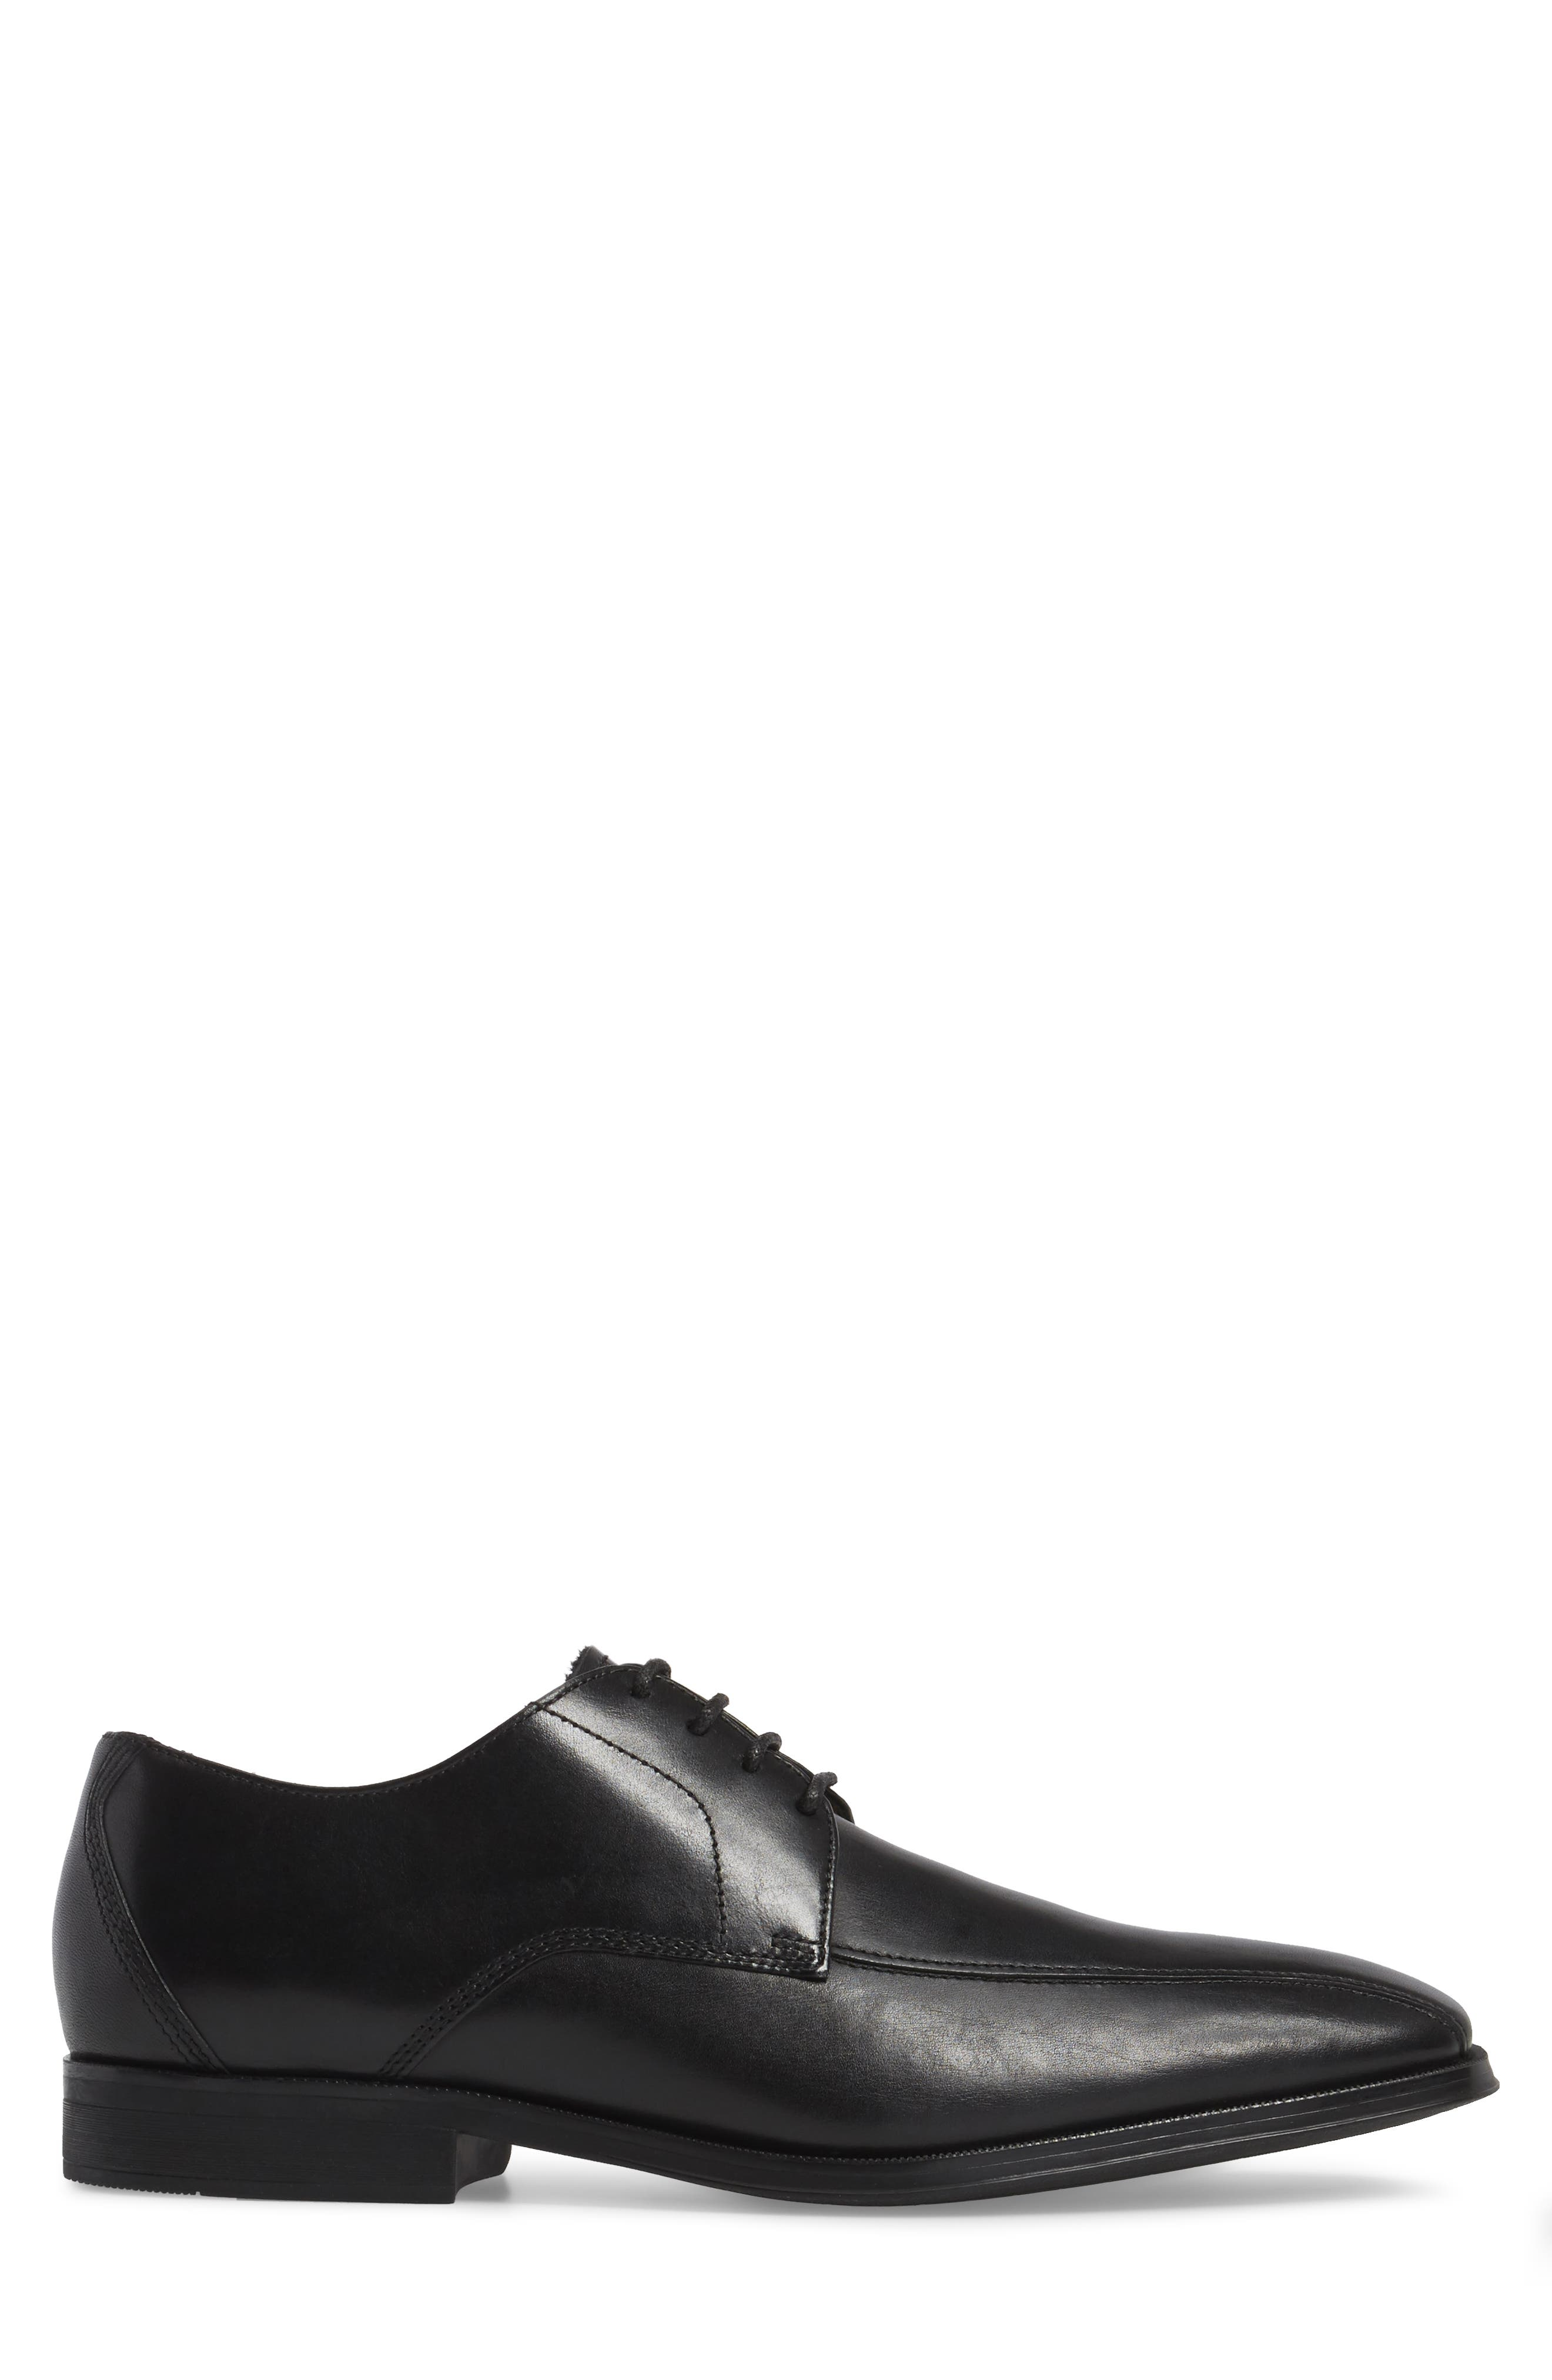 Clarks Gilman Bicycle Toe Derby,                             Alternate thumbnail 3, color,                             Black Leather